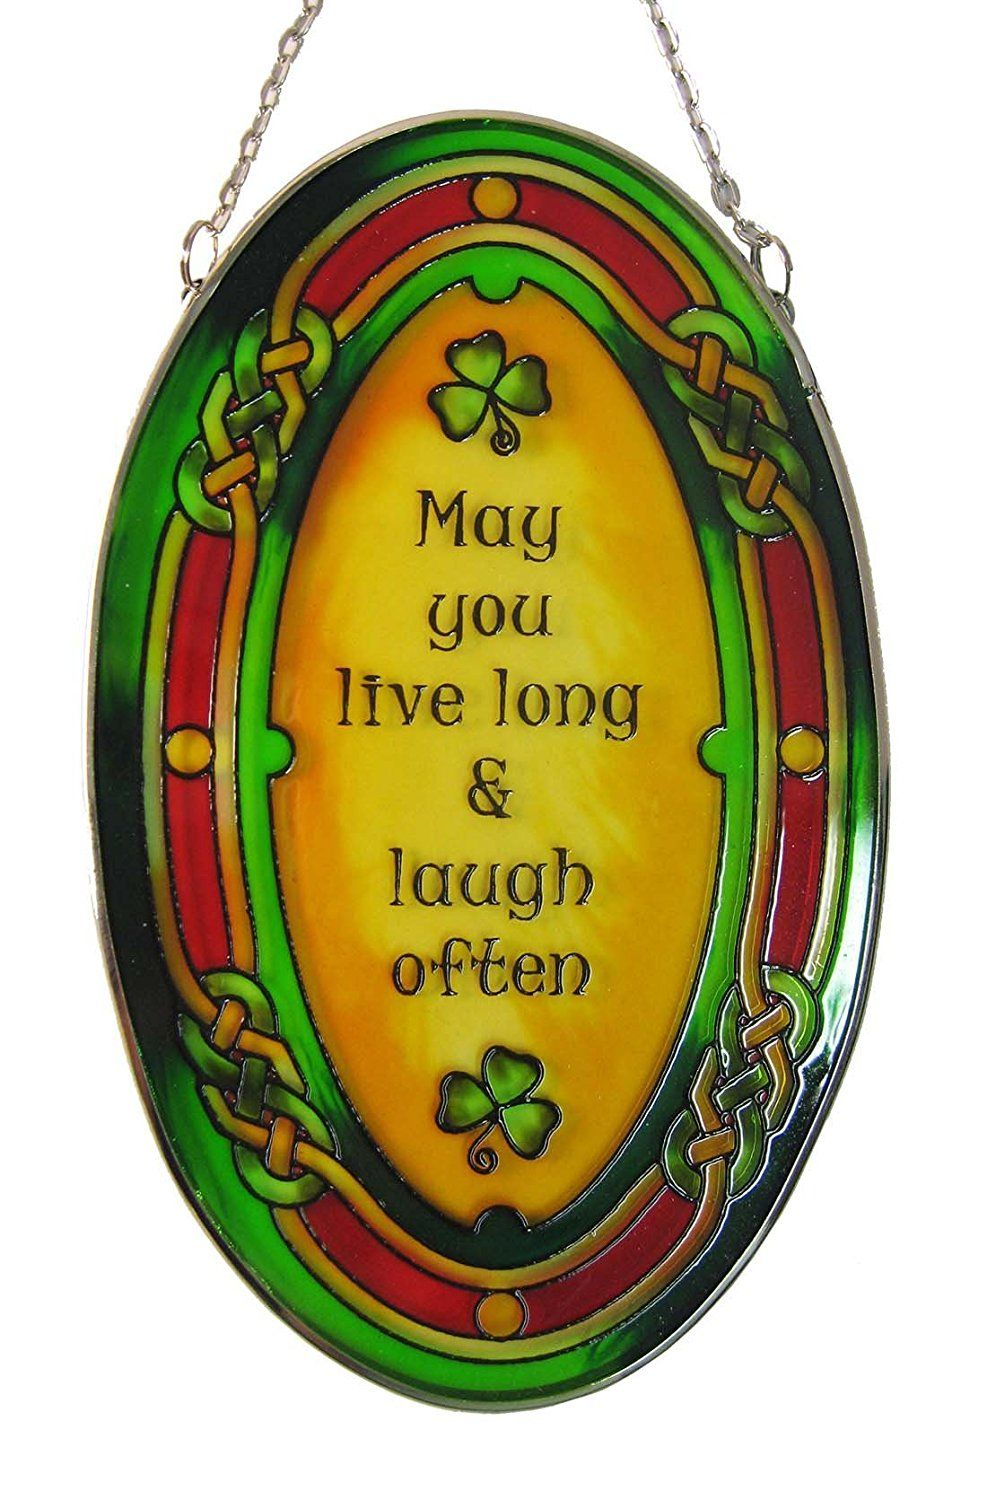 stained glass wall decor, stained glass wall hangings and stained ...